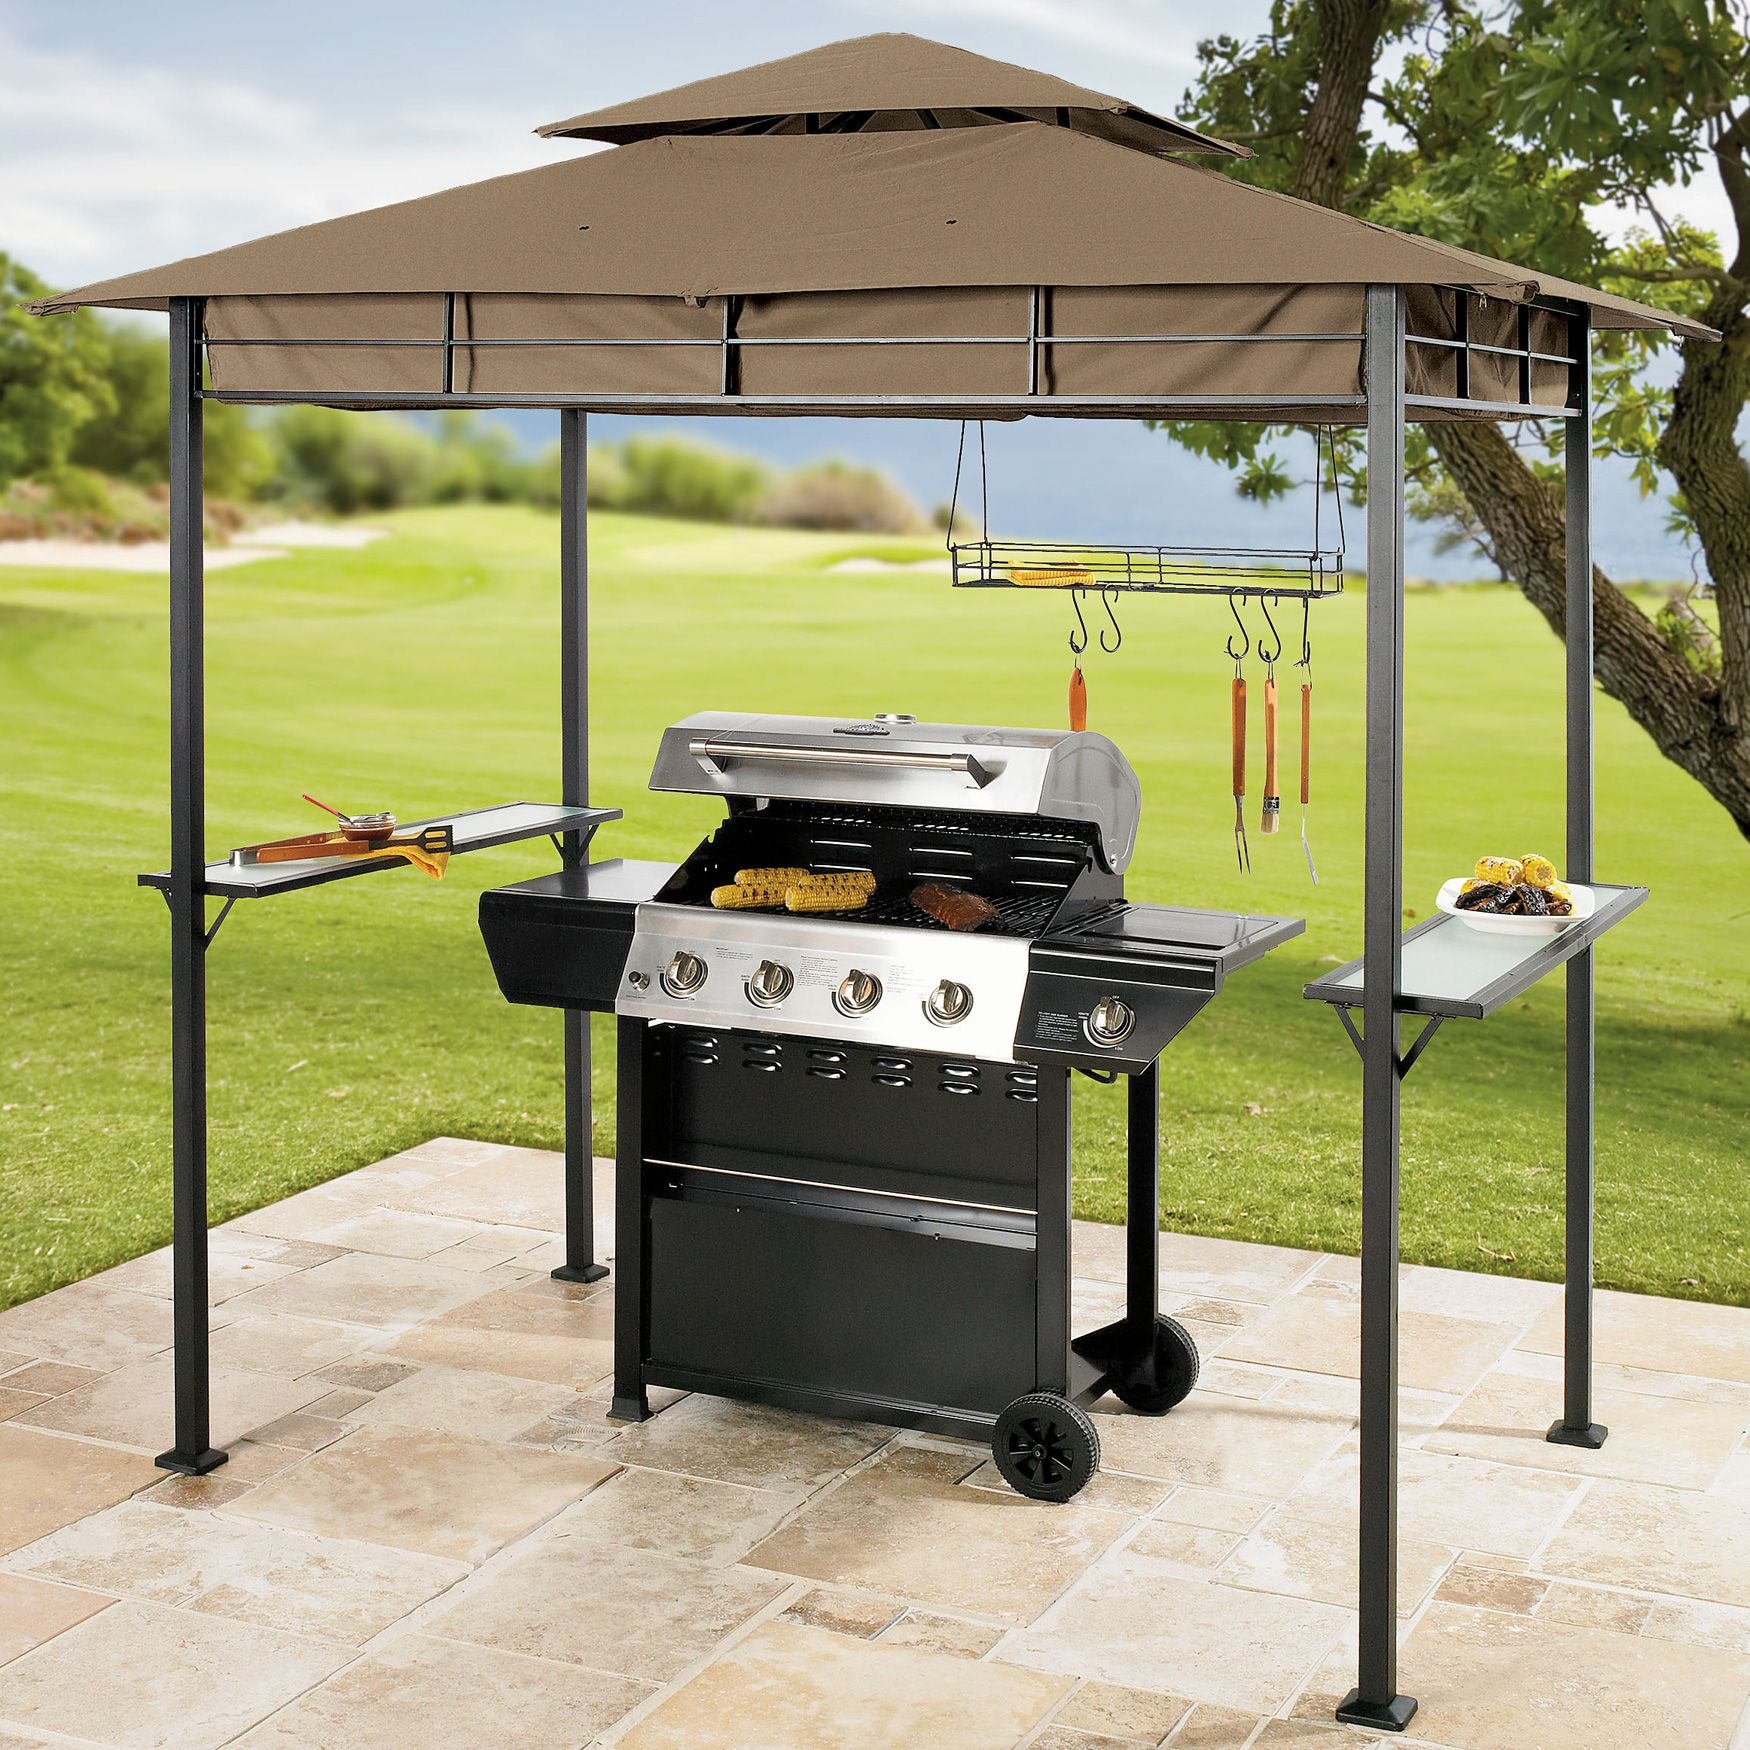 Everything You Need To Know About The Grill Gazebo Grill Gazebo